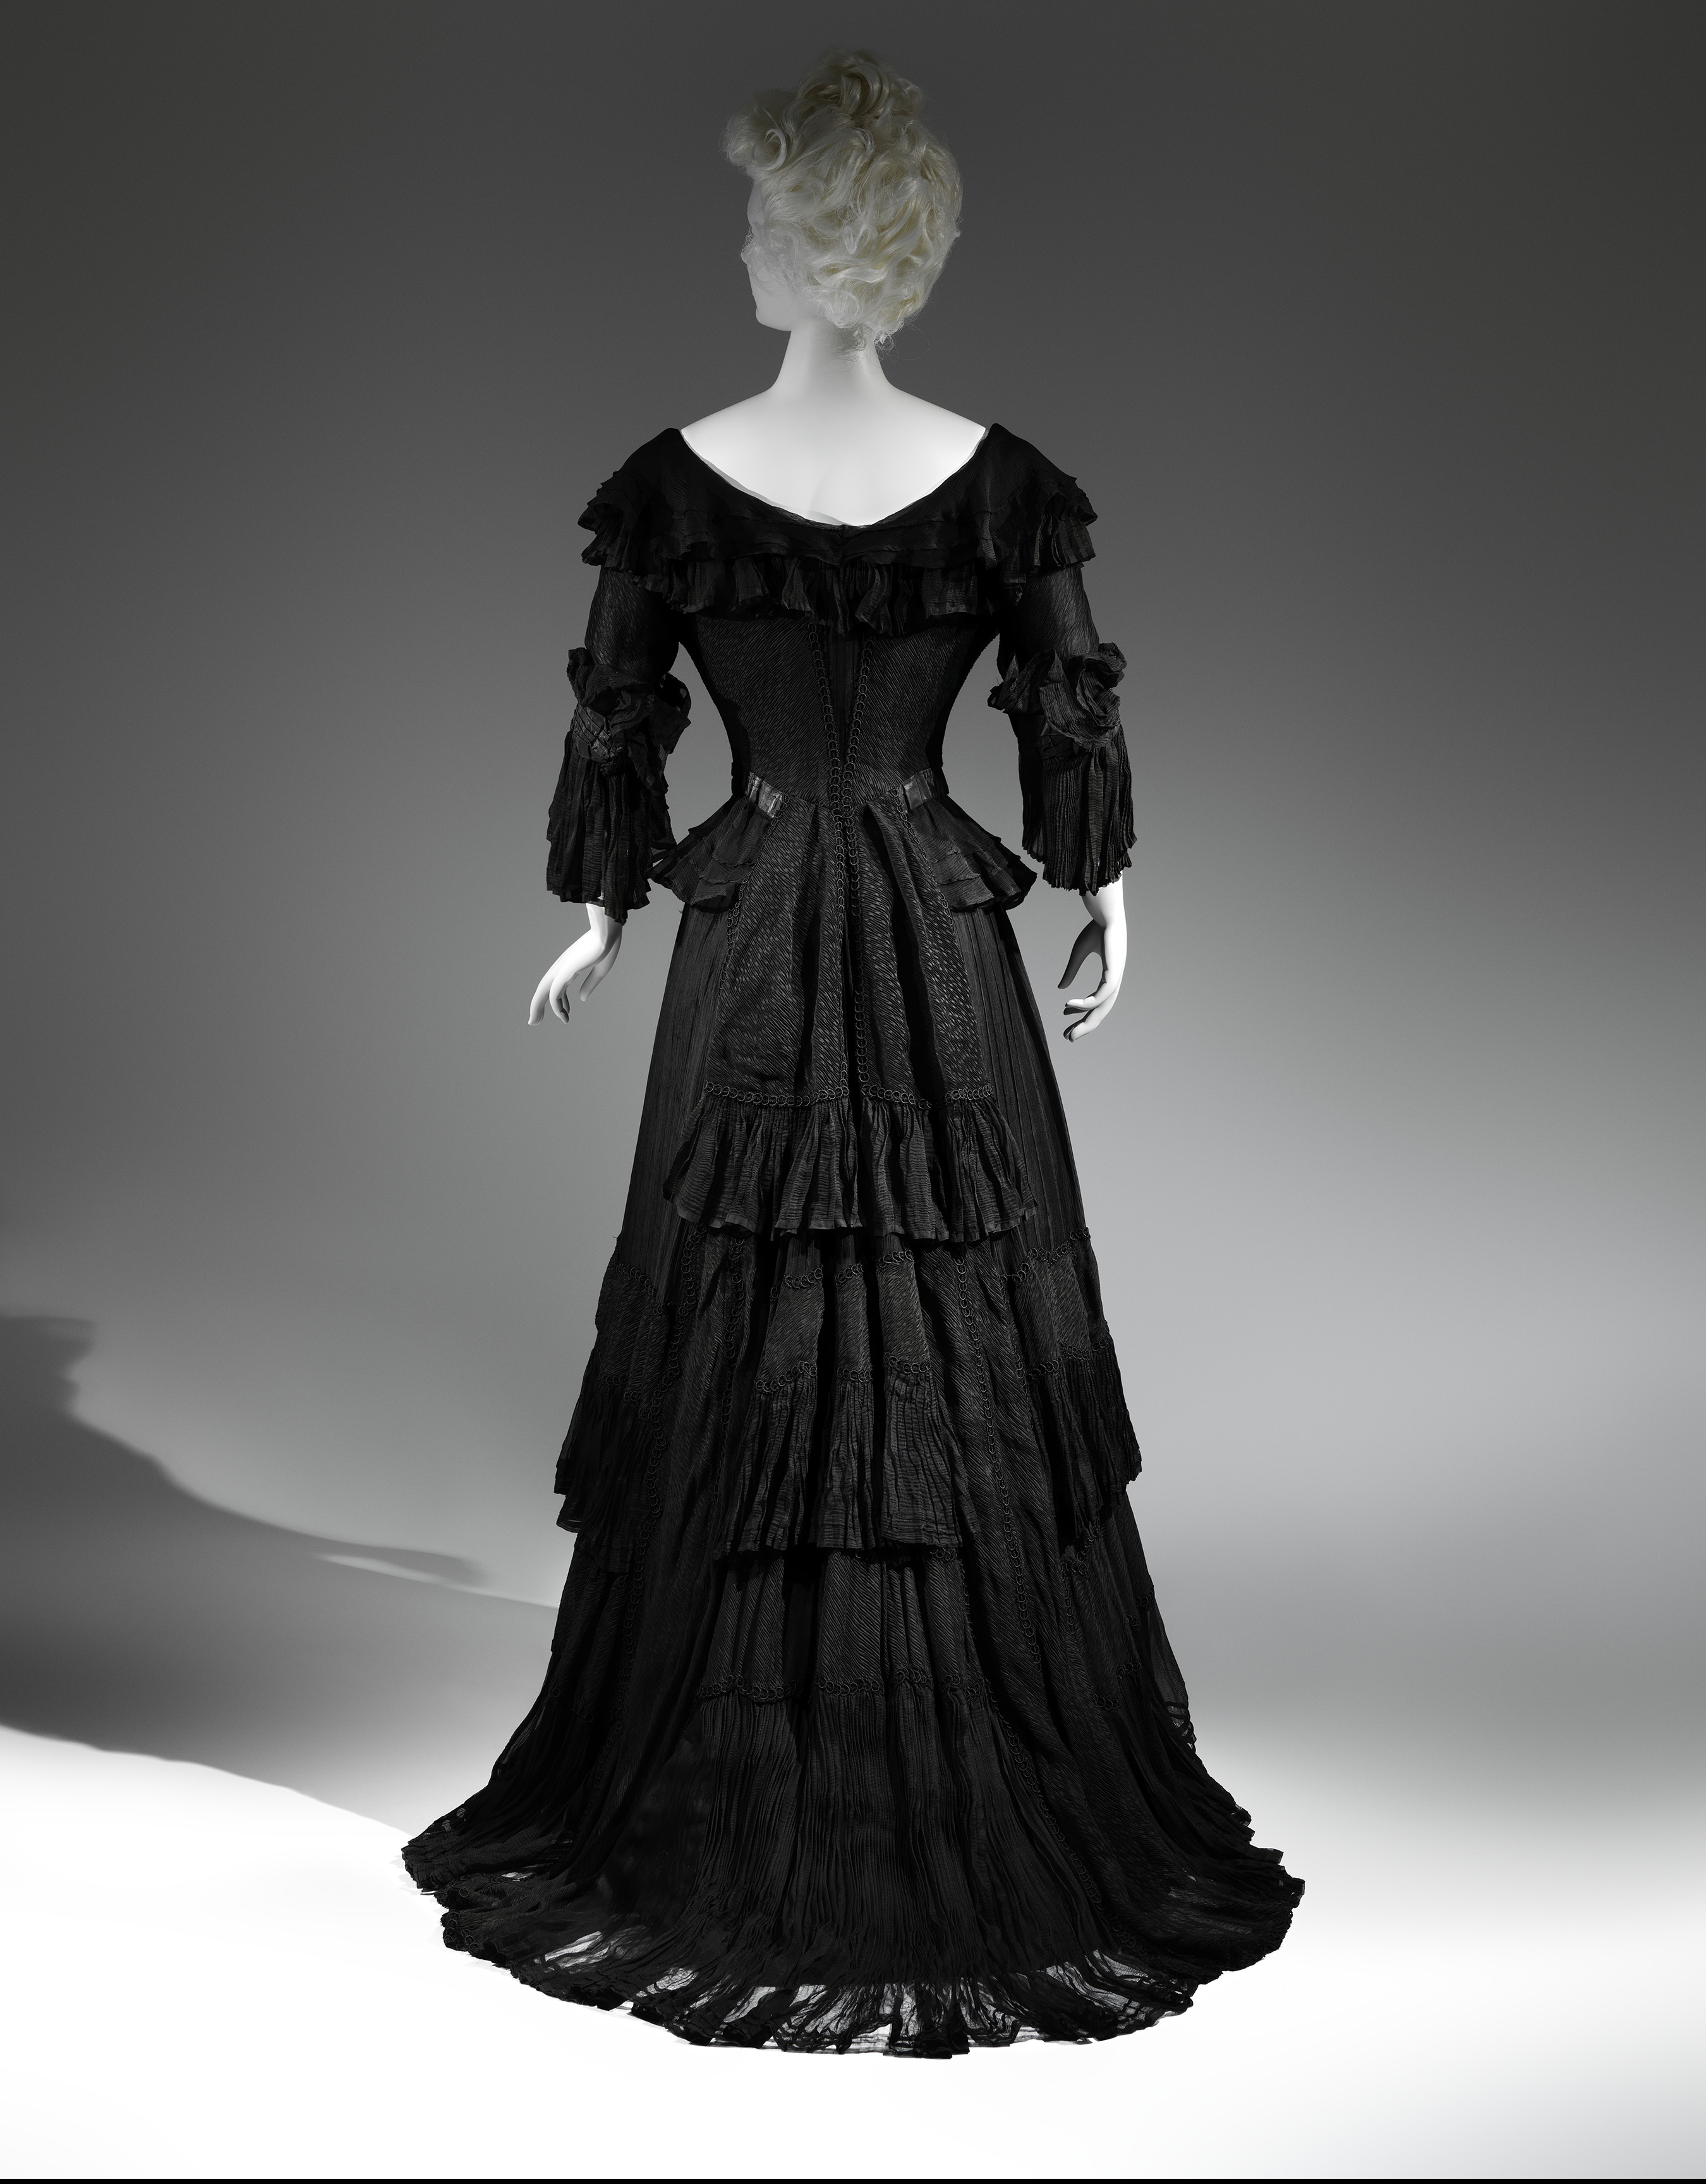 Mourning Dress, 1902-1904 Black silk crape, black chiffon, black taffeta